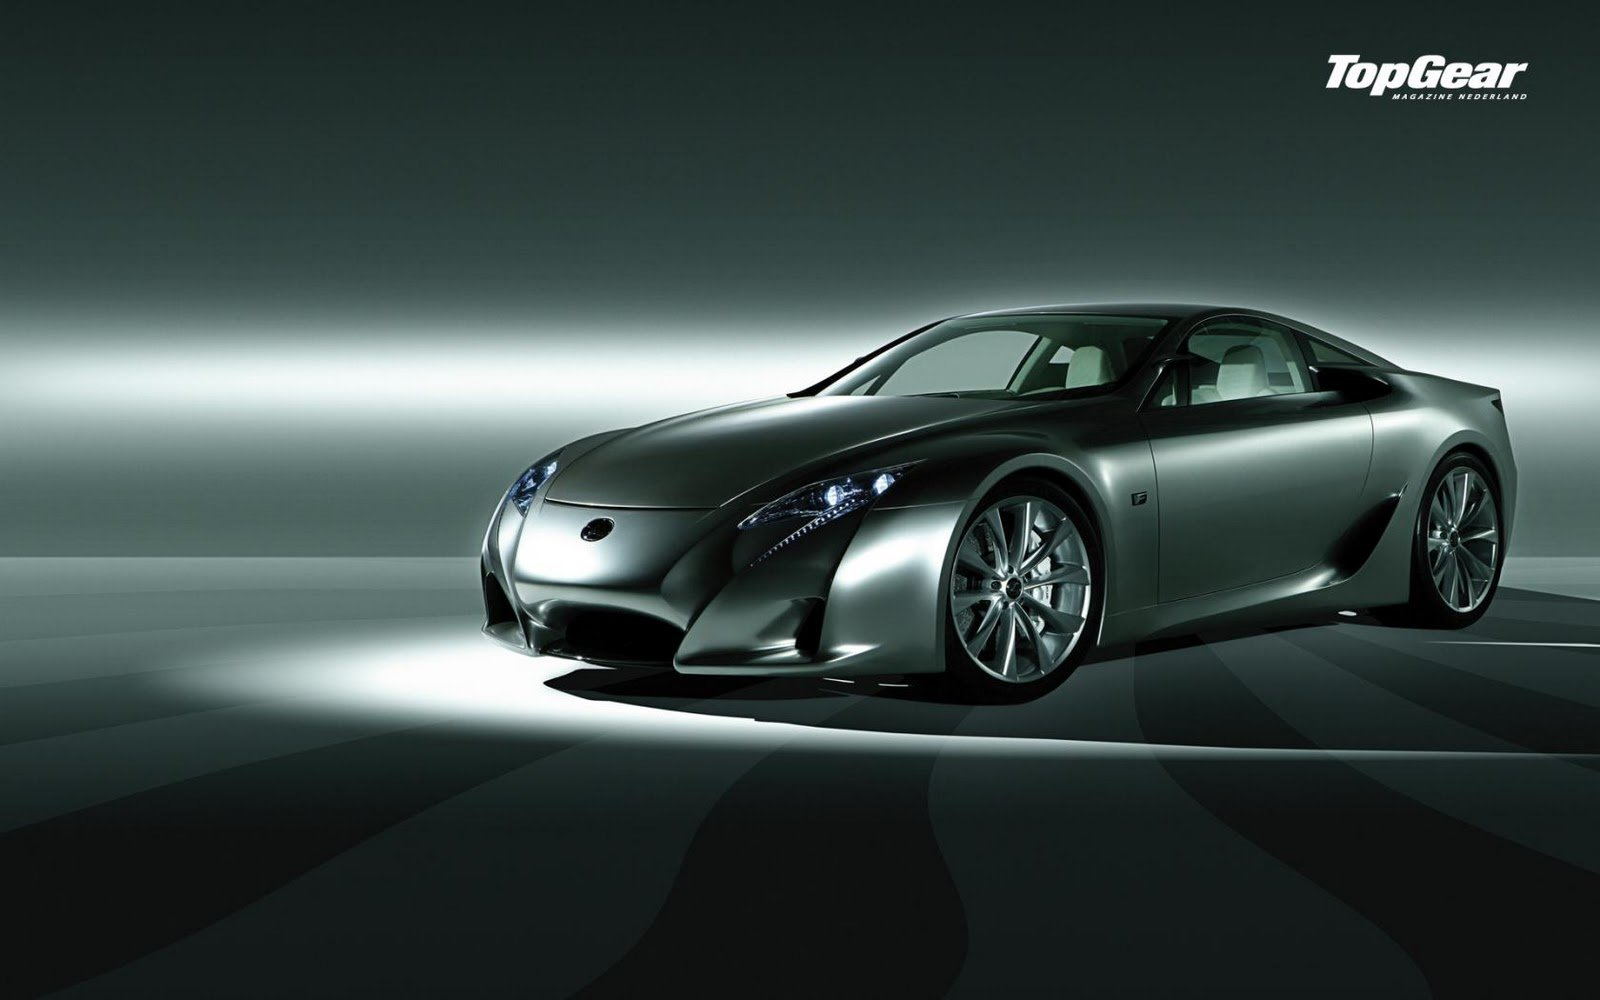 Latest Lexus Car Wallpapers Hd Nice Wallpapers Free Download